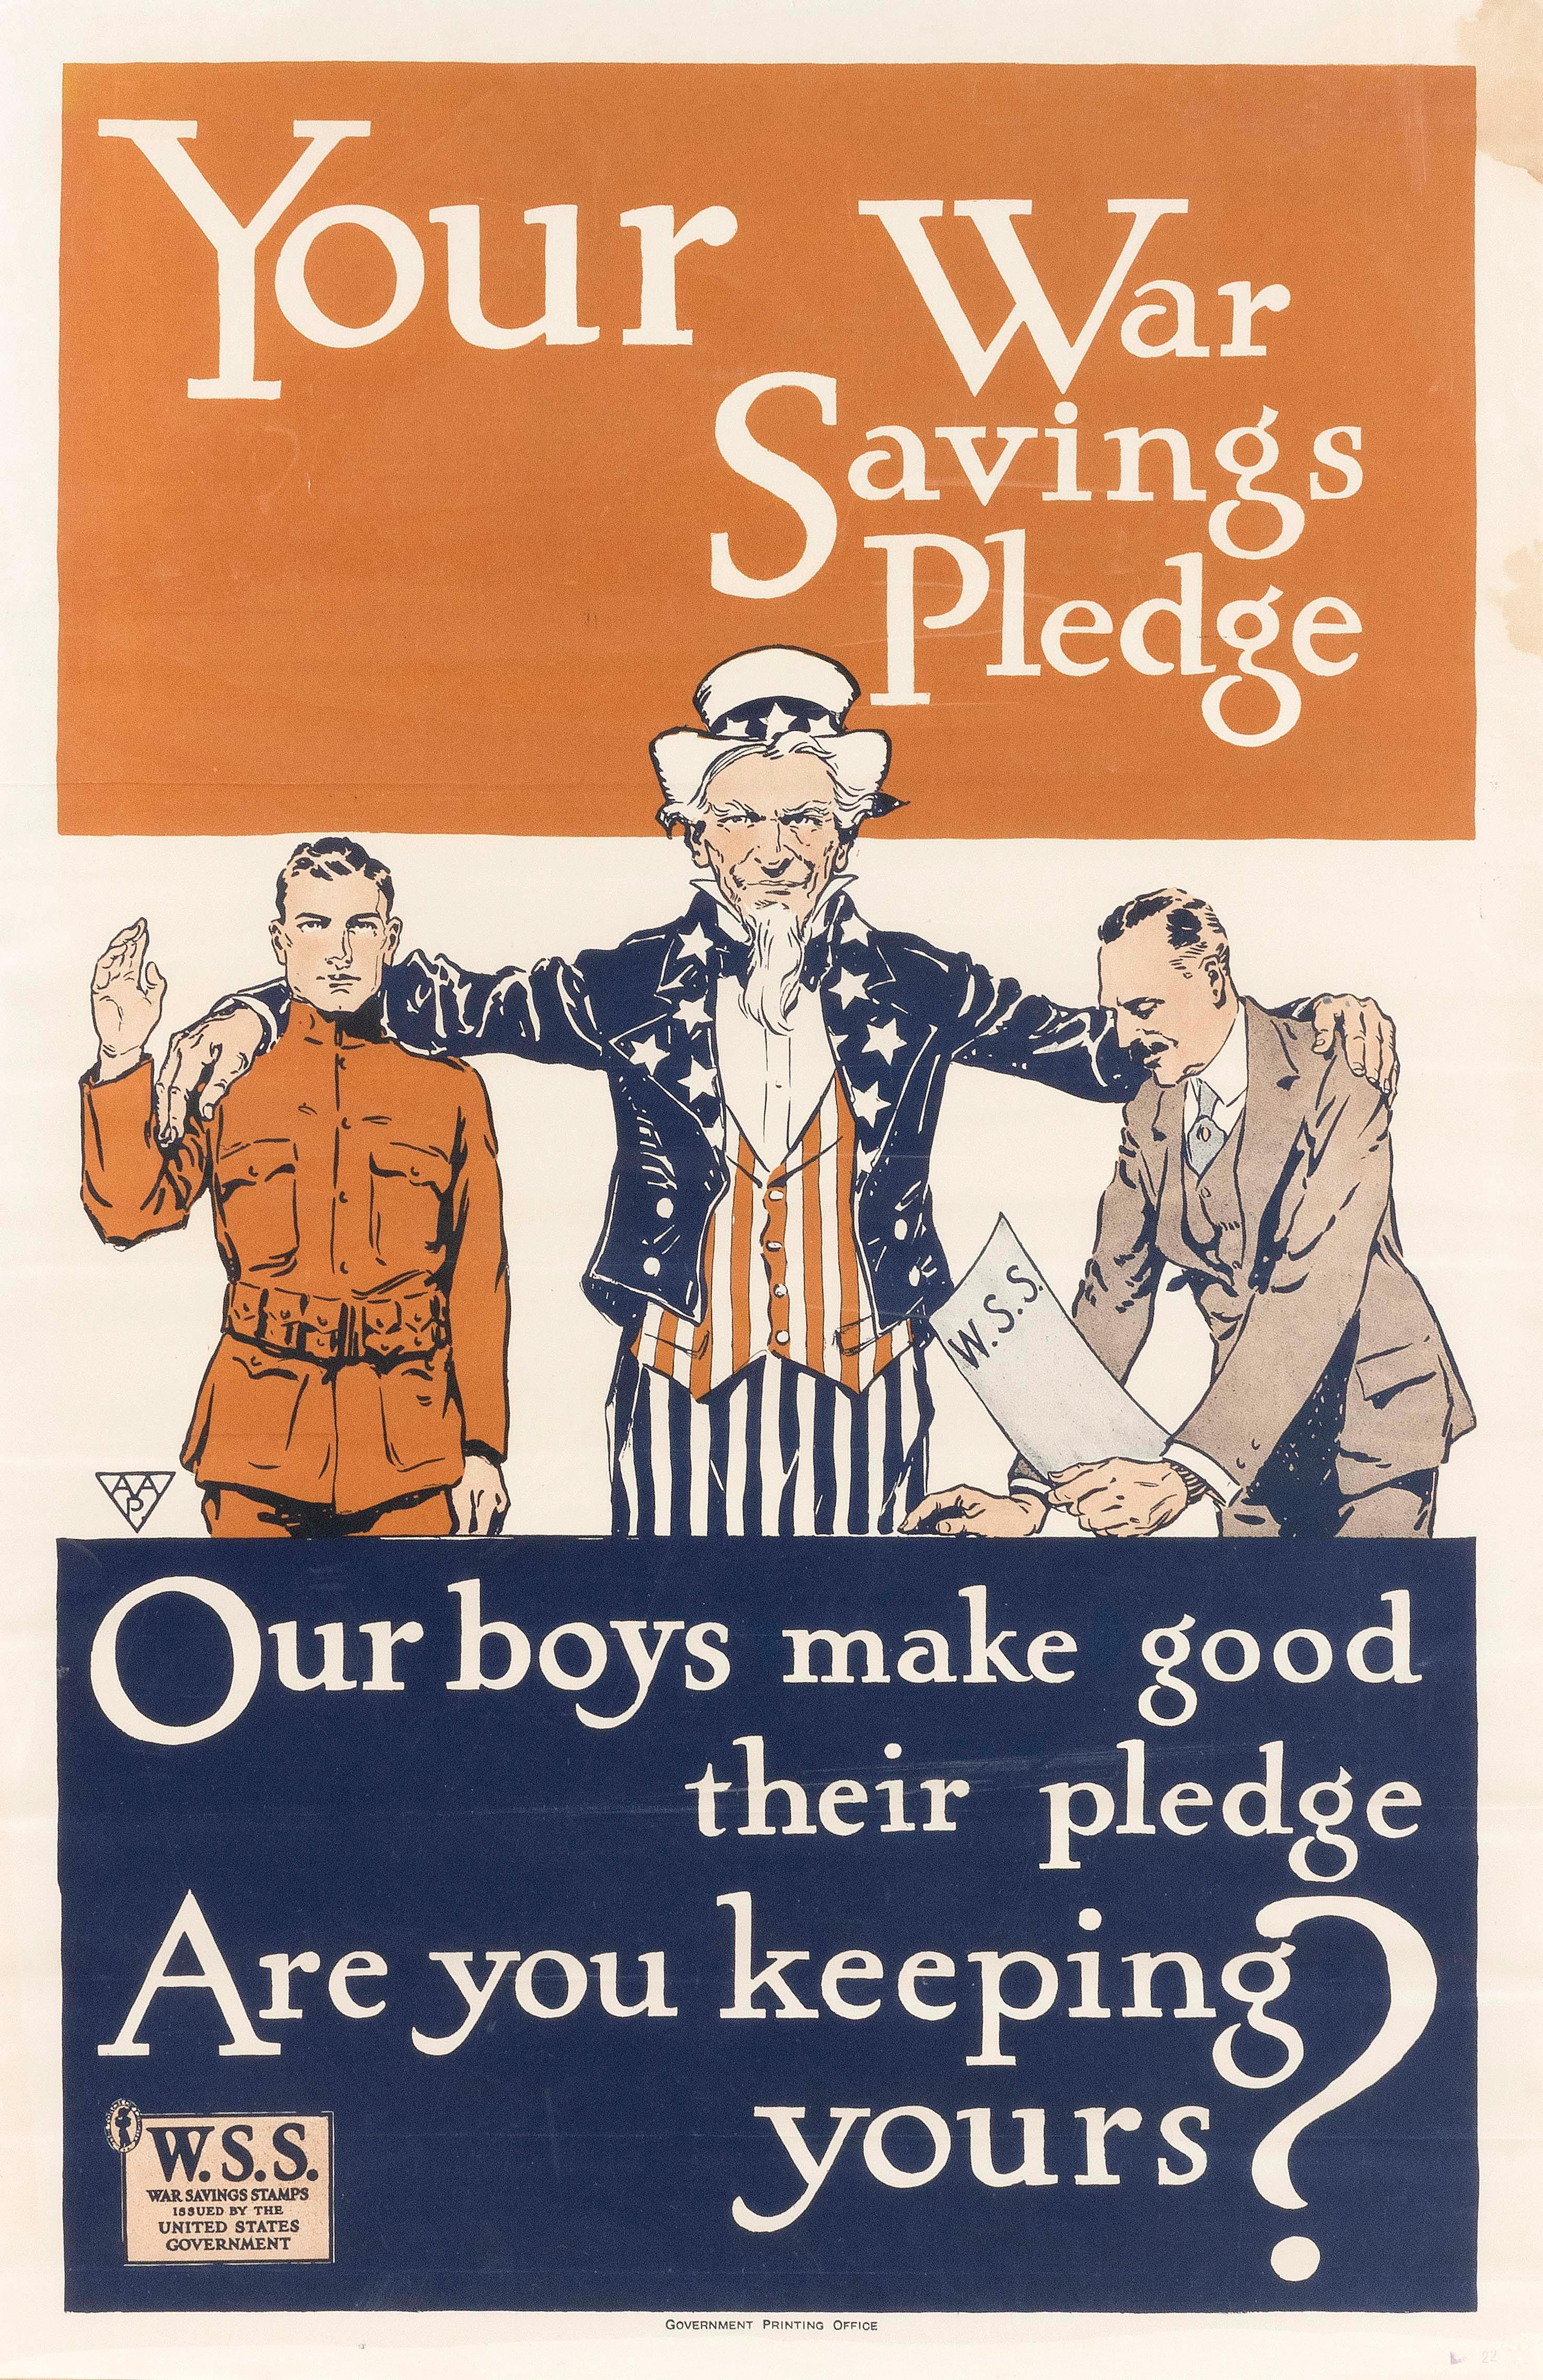 """""""YOUR WAR SAVINGS PLEDGE OUR BOYS MAKE GOOD THEIR PLEDGE ARE YOU KEEPING YOURS?"""" WORLD WAR I POSTER For War Savings Stamps, publishe..."""